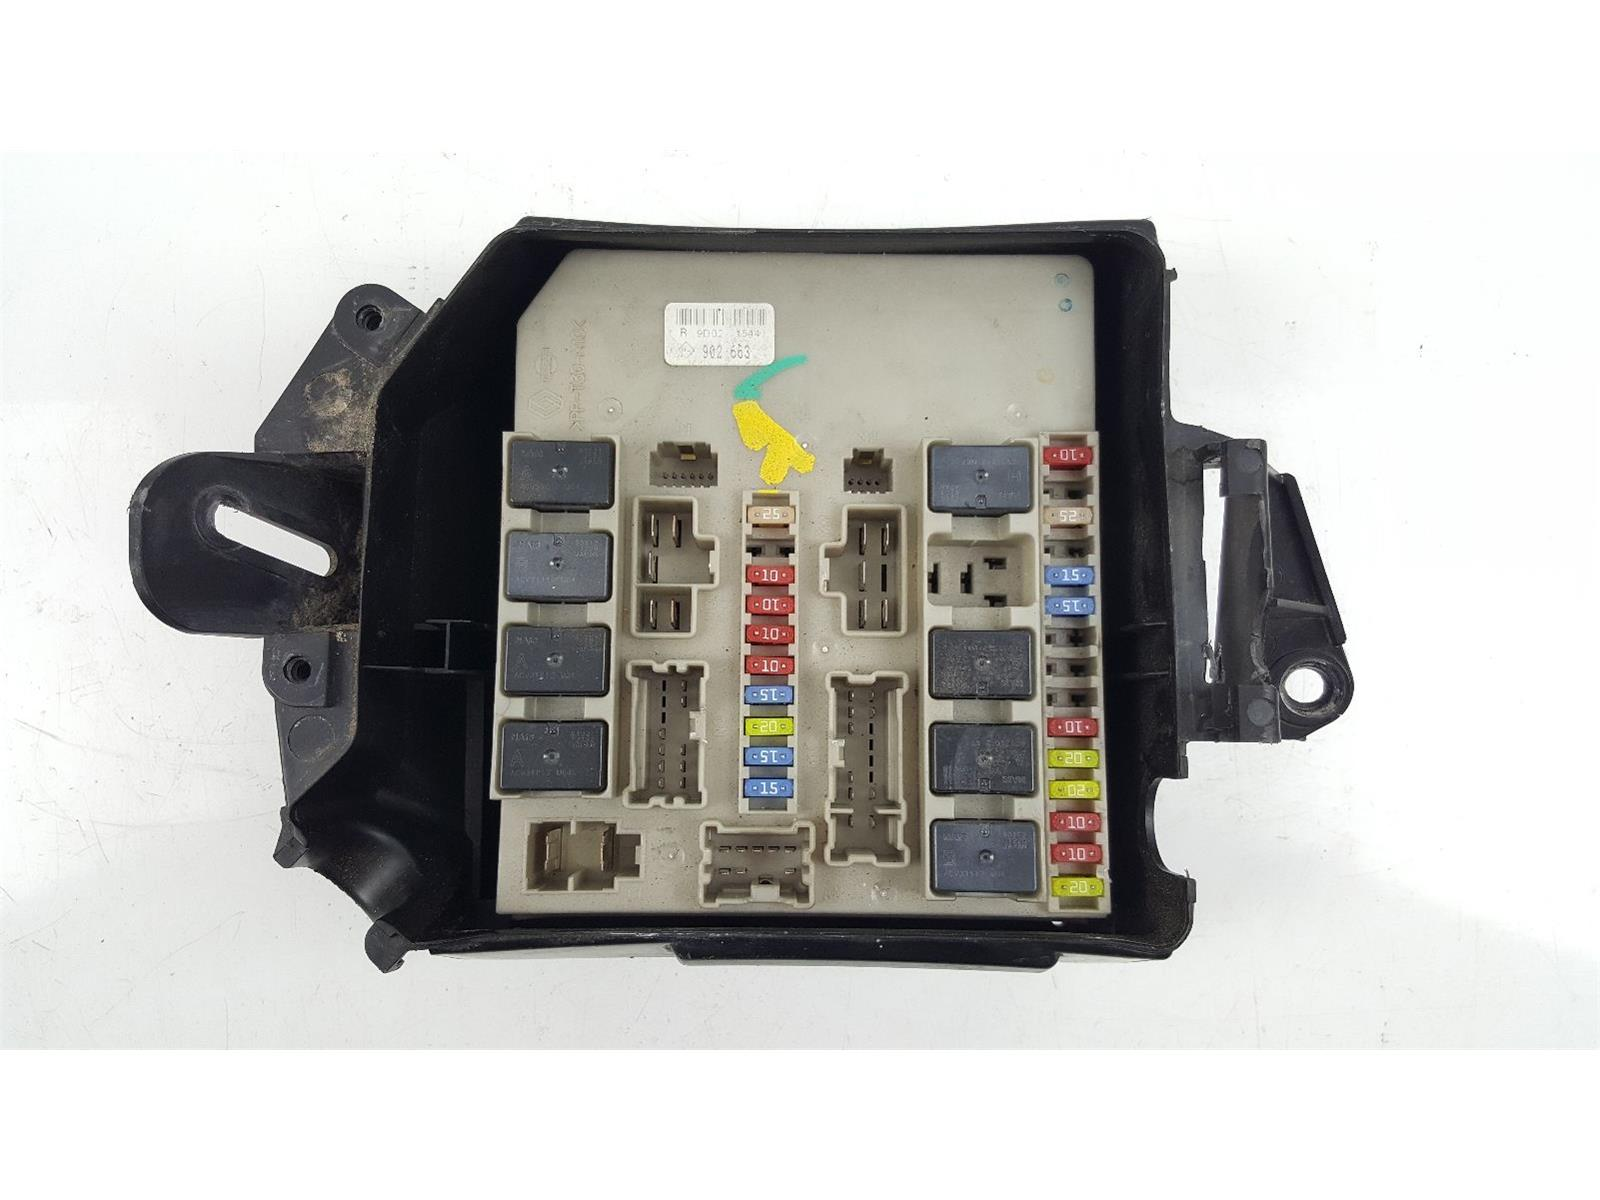 Renault Clio 99 Fuse Box Wiring Library On 2003 2009 2012 Mk3 902663 20 Petrol Renaultsport